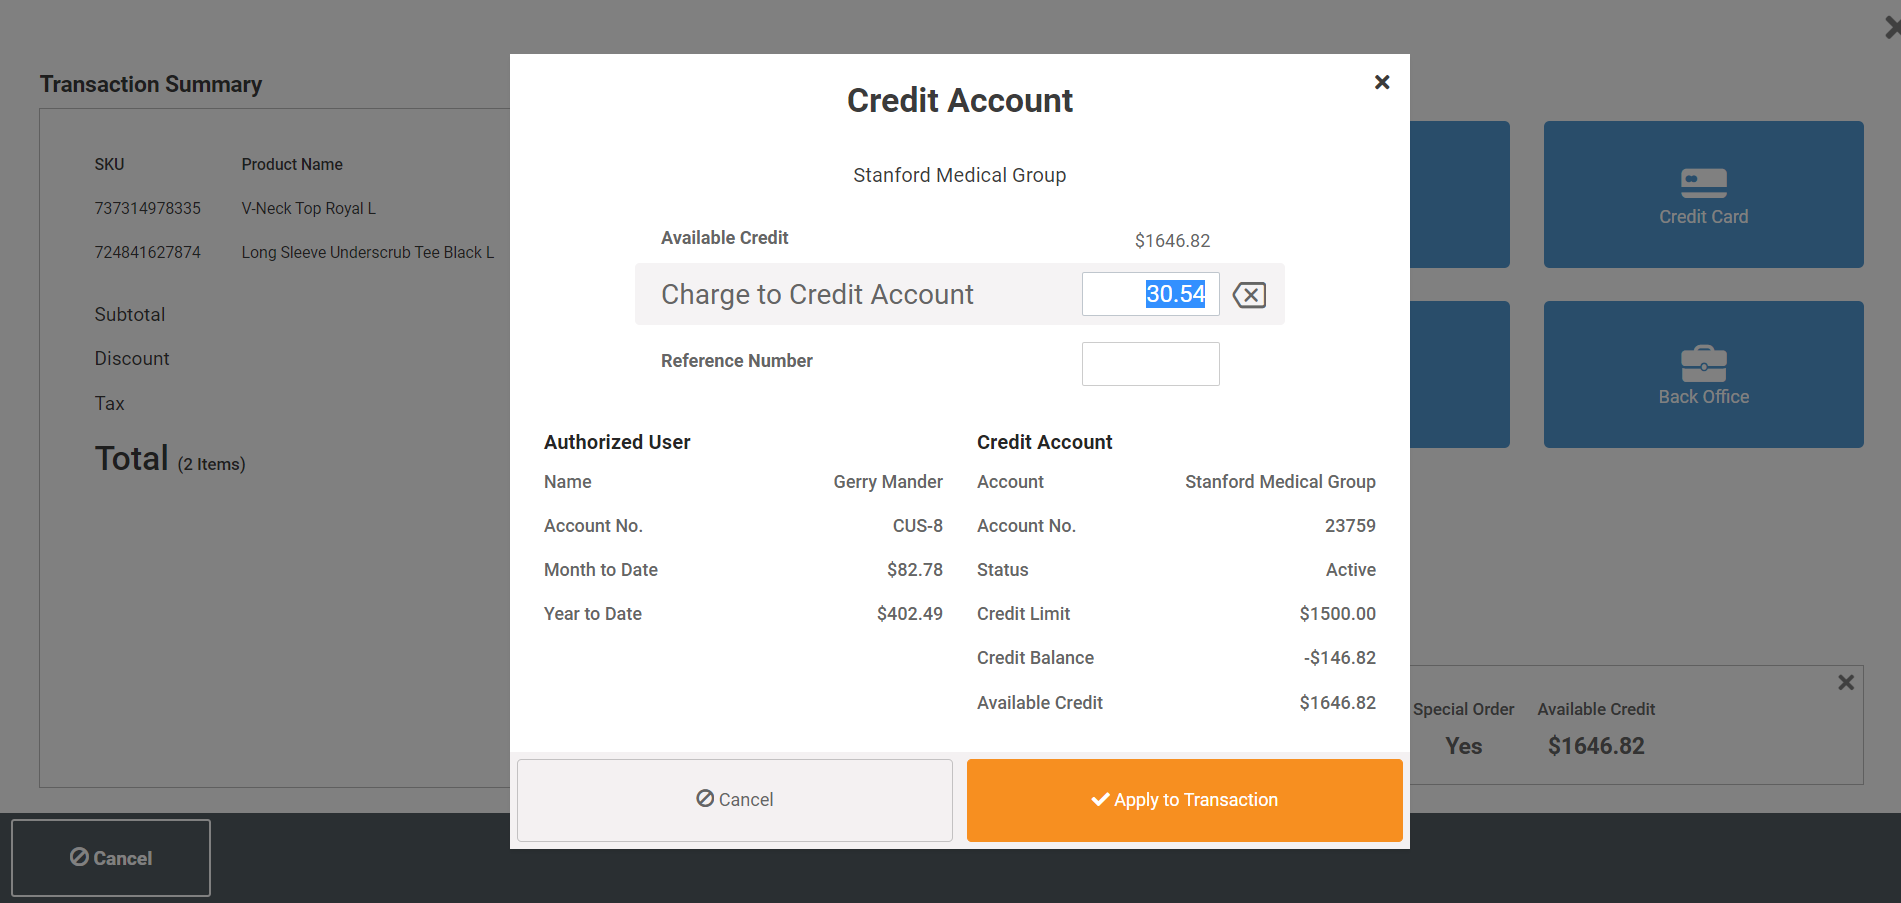 Credit Accounts and Accounts Receivable - Set-up and manage customer credit accounts, allowing your customers to bill their purchases to their employers credit account.  Set credit limits, send out statements and apply payments to the account.